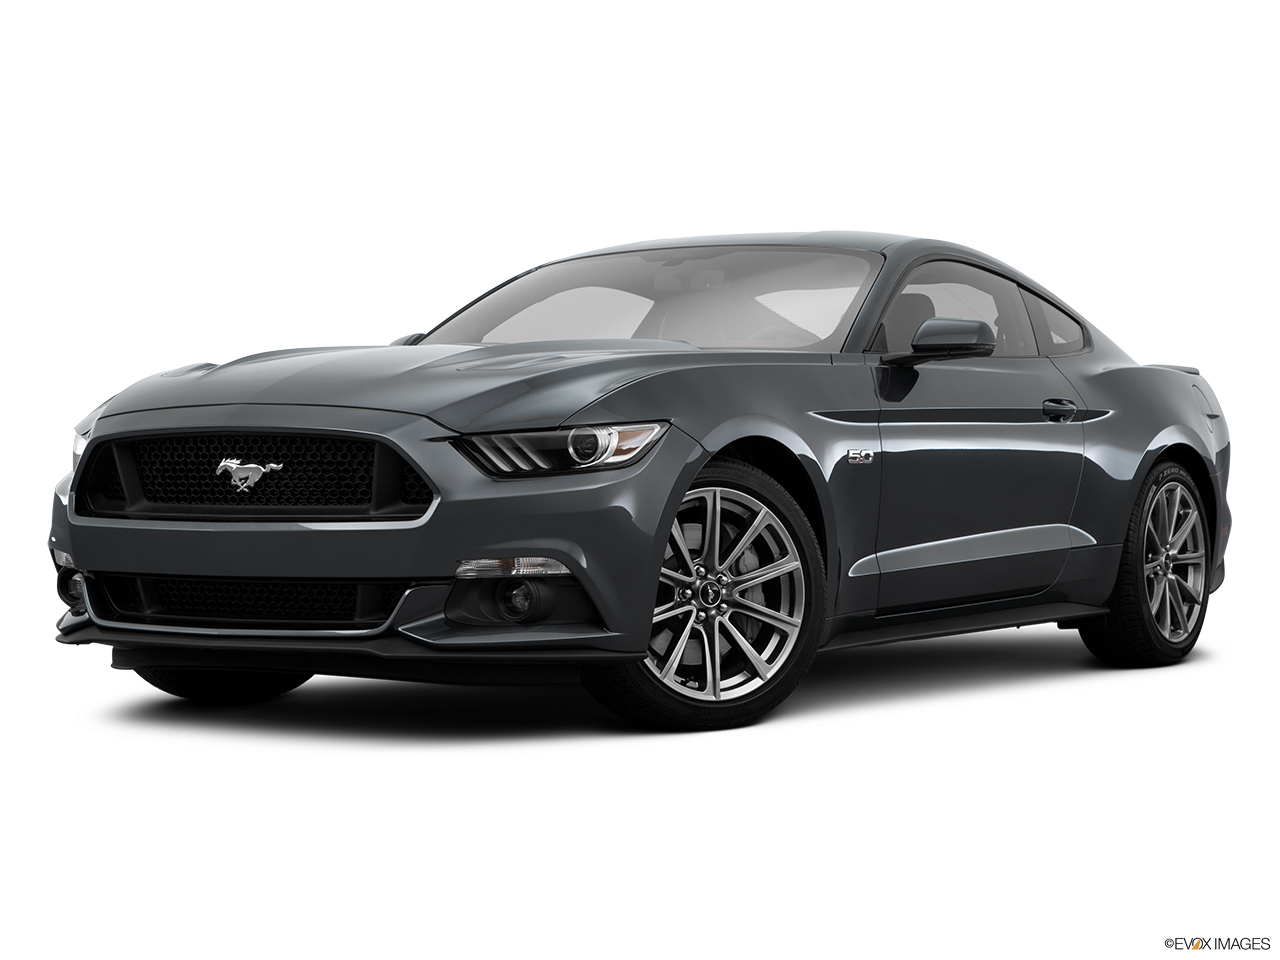 2015 Ford Mustang 2dr Convertible EcoBoost Premium - Front angle medium view